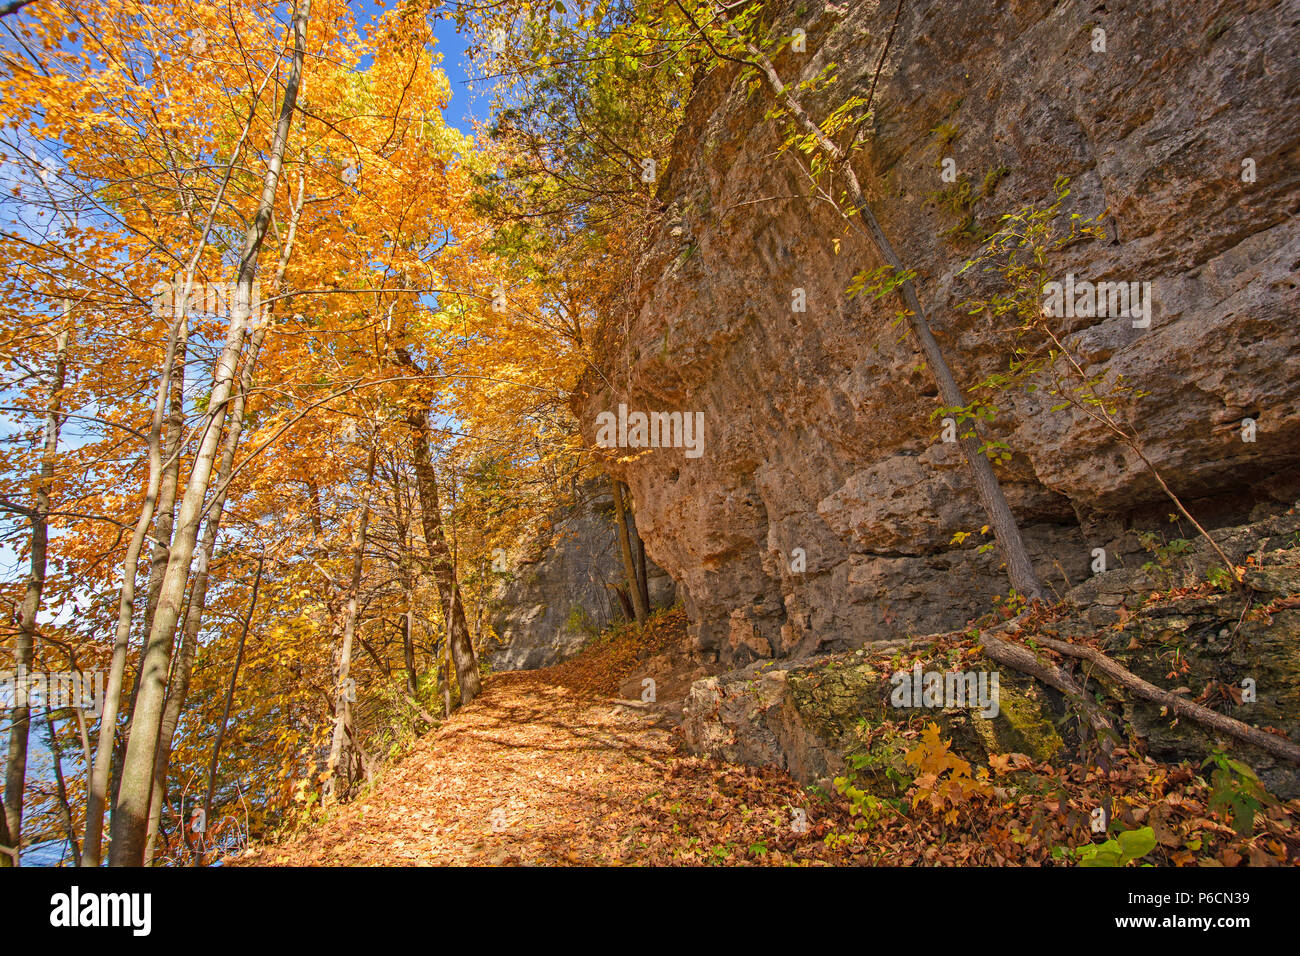 Hiking a Cliff Trail in the Fall in Backbone State Park in Iowa - Stock Image